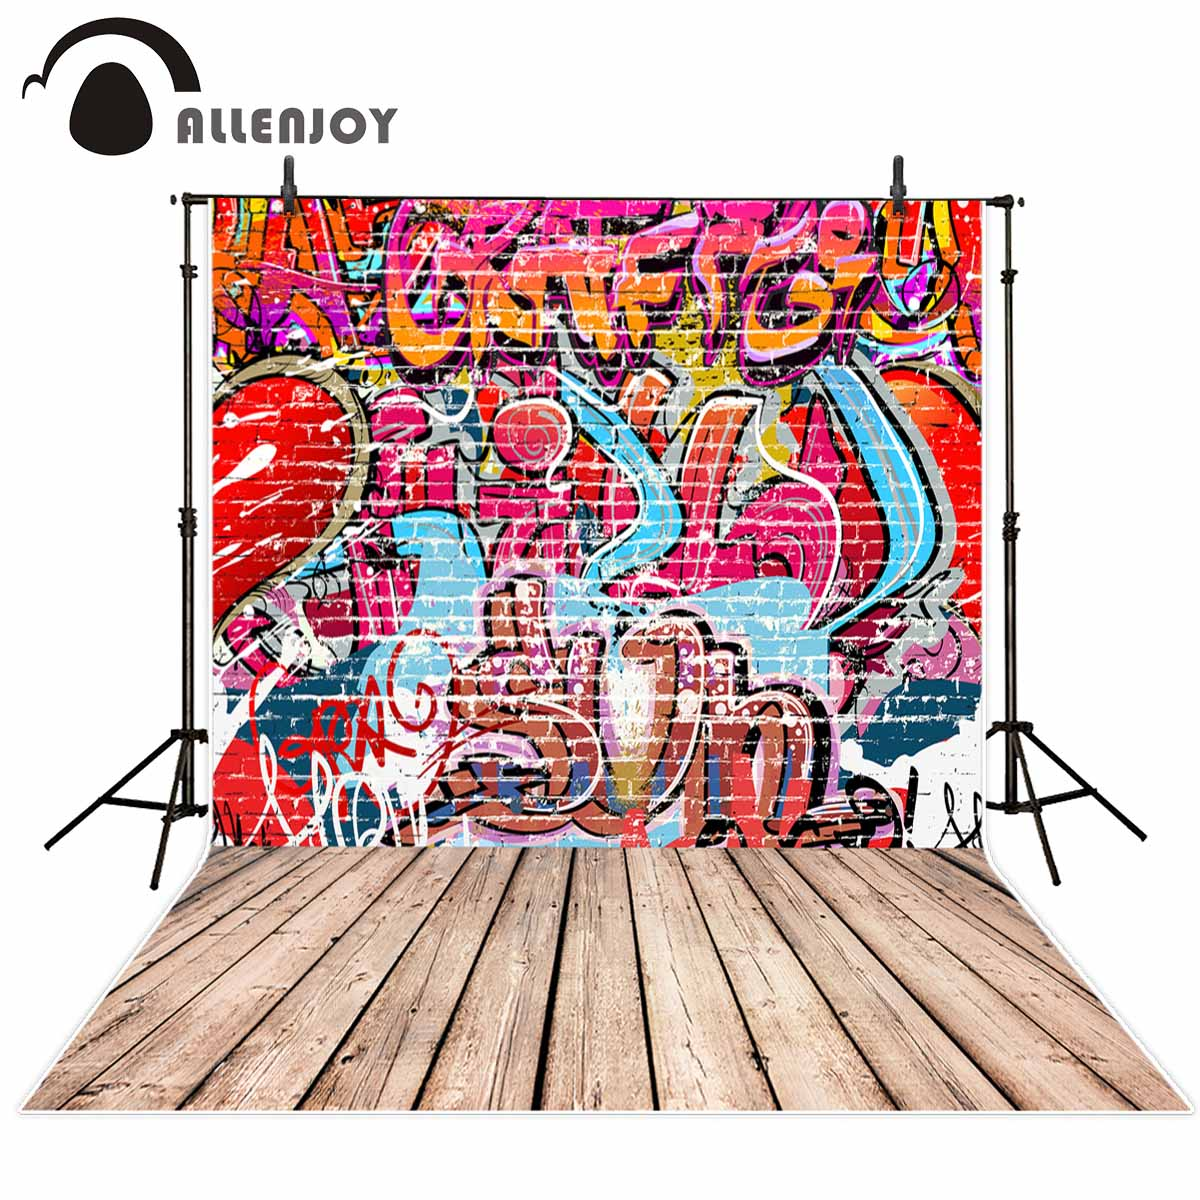 Allenjoy Graffiti backdrop cool red brick wall wood floor backdrop backgrounds for kids for photo studio photography background allenjoy photography backdrops white and gray brick wall brick floor backgrounds for photo studio photography studio backgrounds